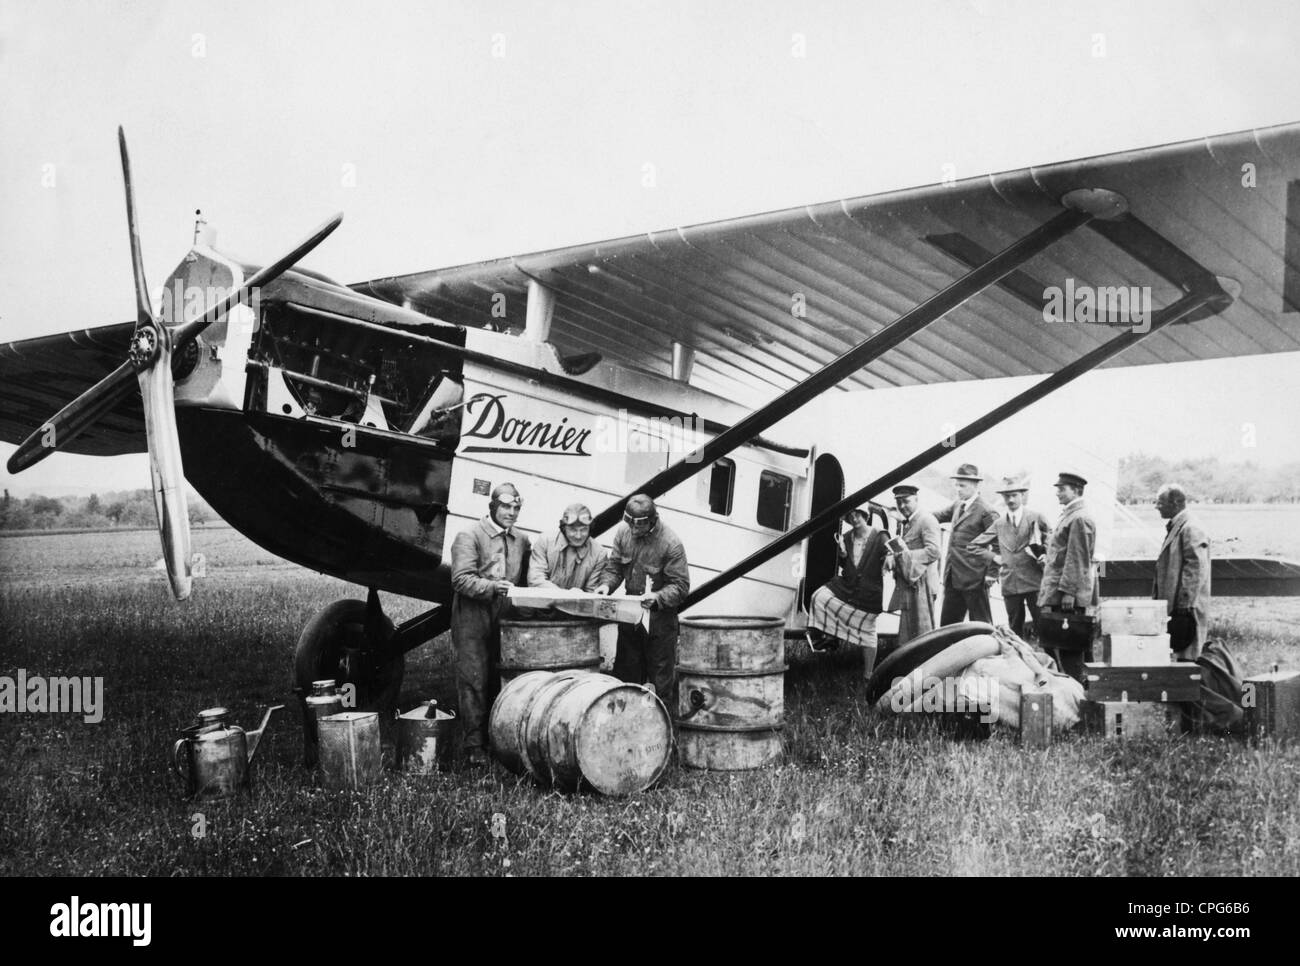 airplanes in the 1920s thejudgereport827webfc2com